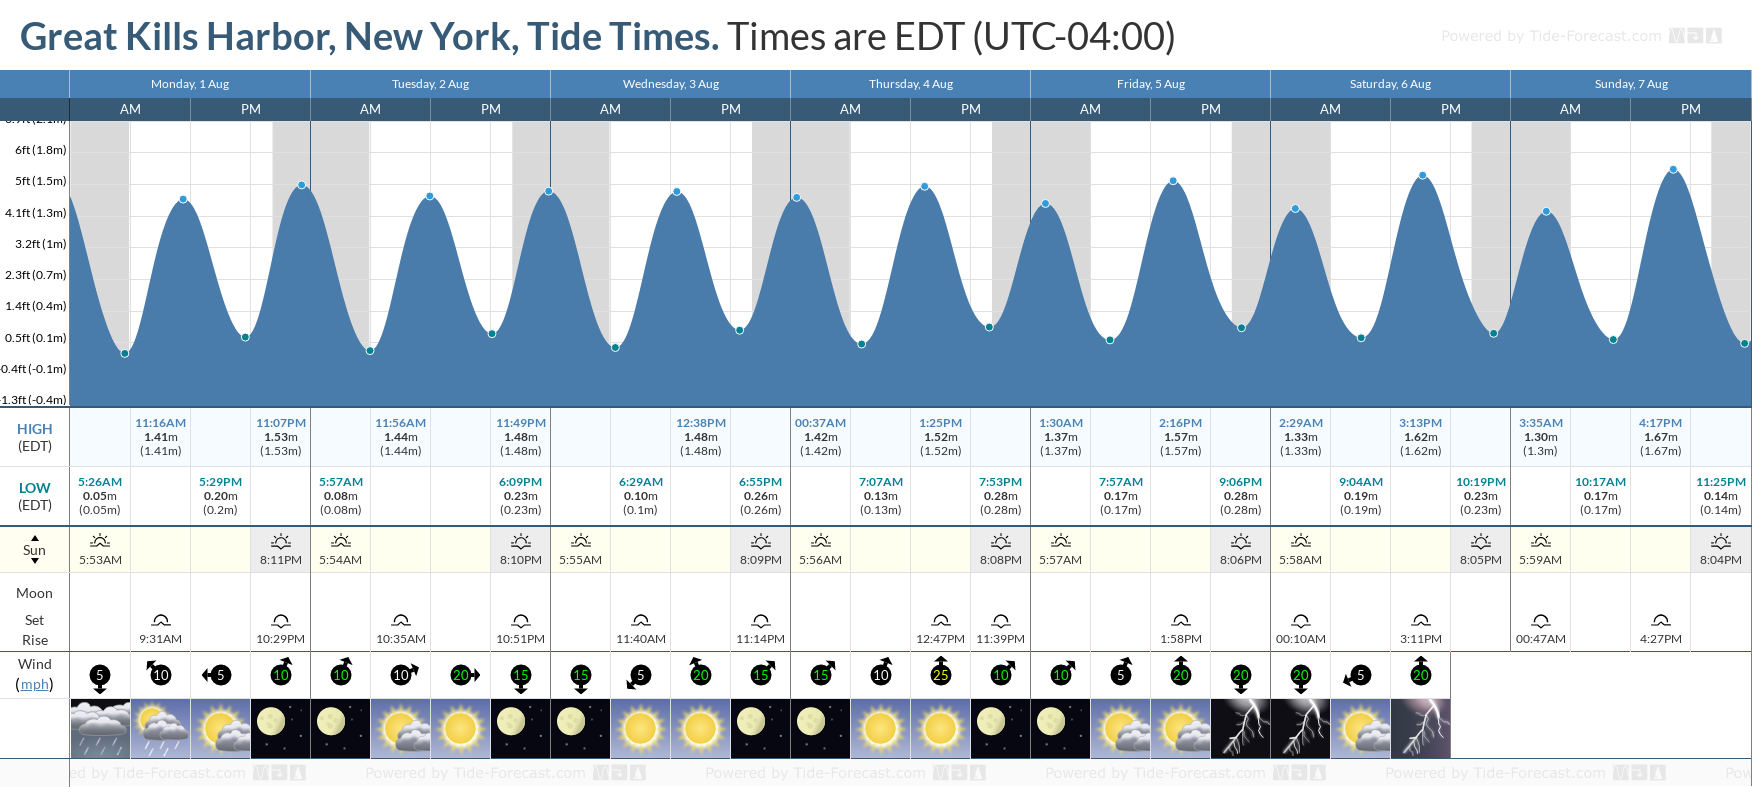 Great Kills Harbor, New York Tide Chart including high and low tide tide times for the next 7 days